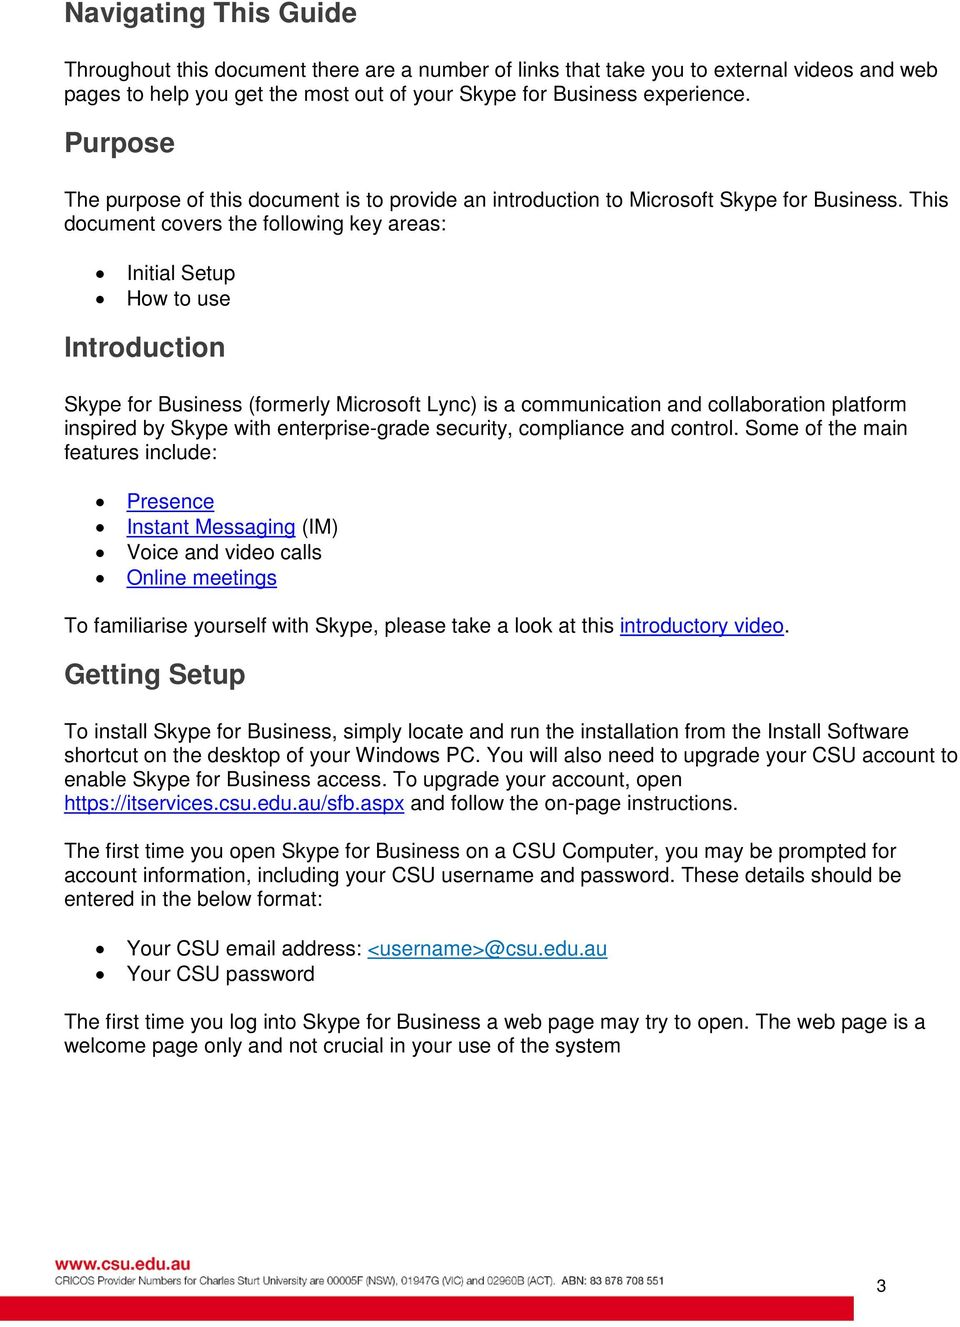 This document covers the following key areas: Initial Setup How to use Introduction Skype for Business (formerly Microsoft Lync) is a communication and collaboration platform inspired by Skype with